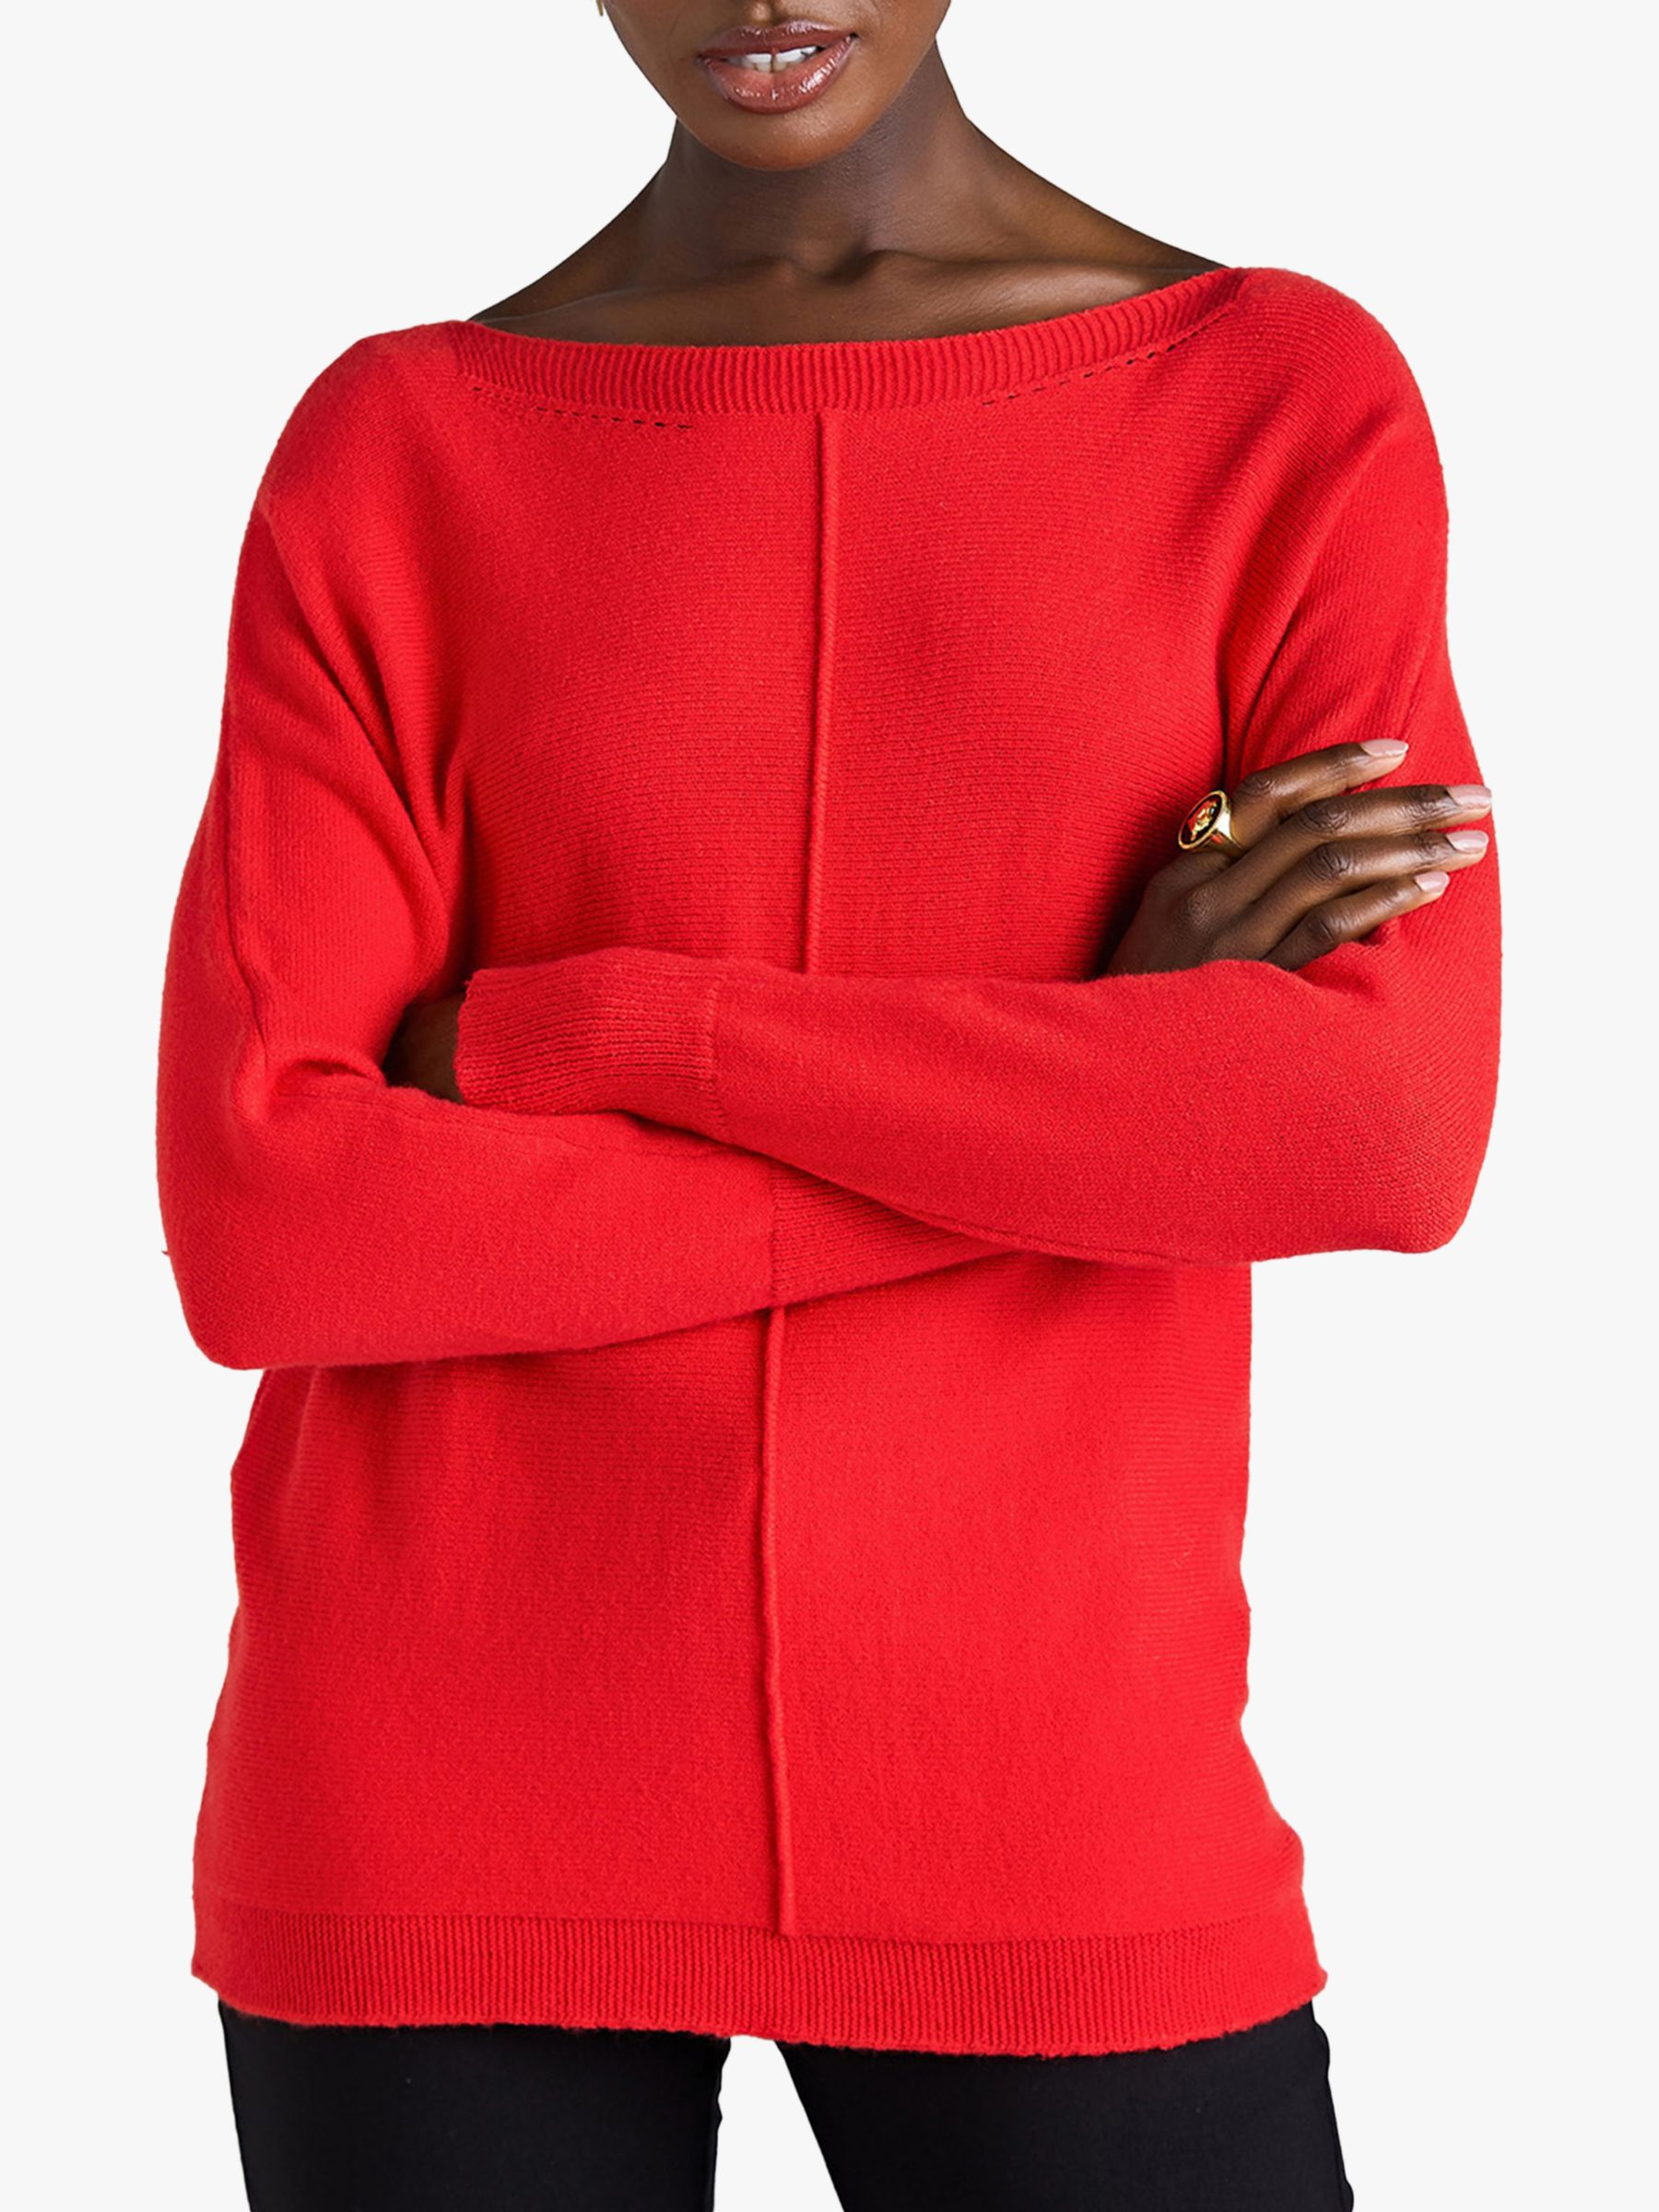 Yumi Yumi Relaxed Knit Jumper, Red